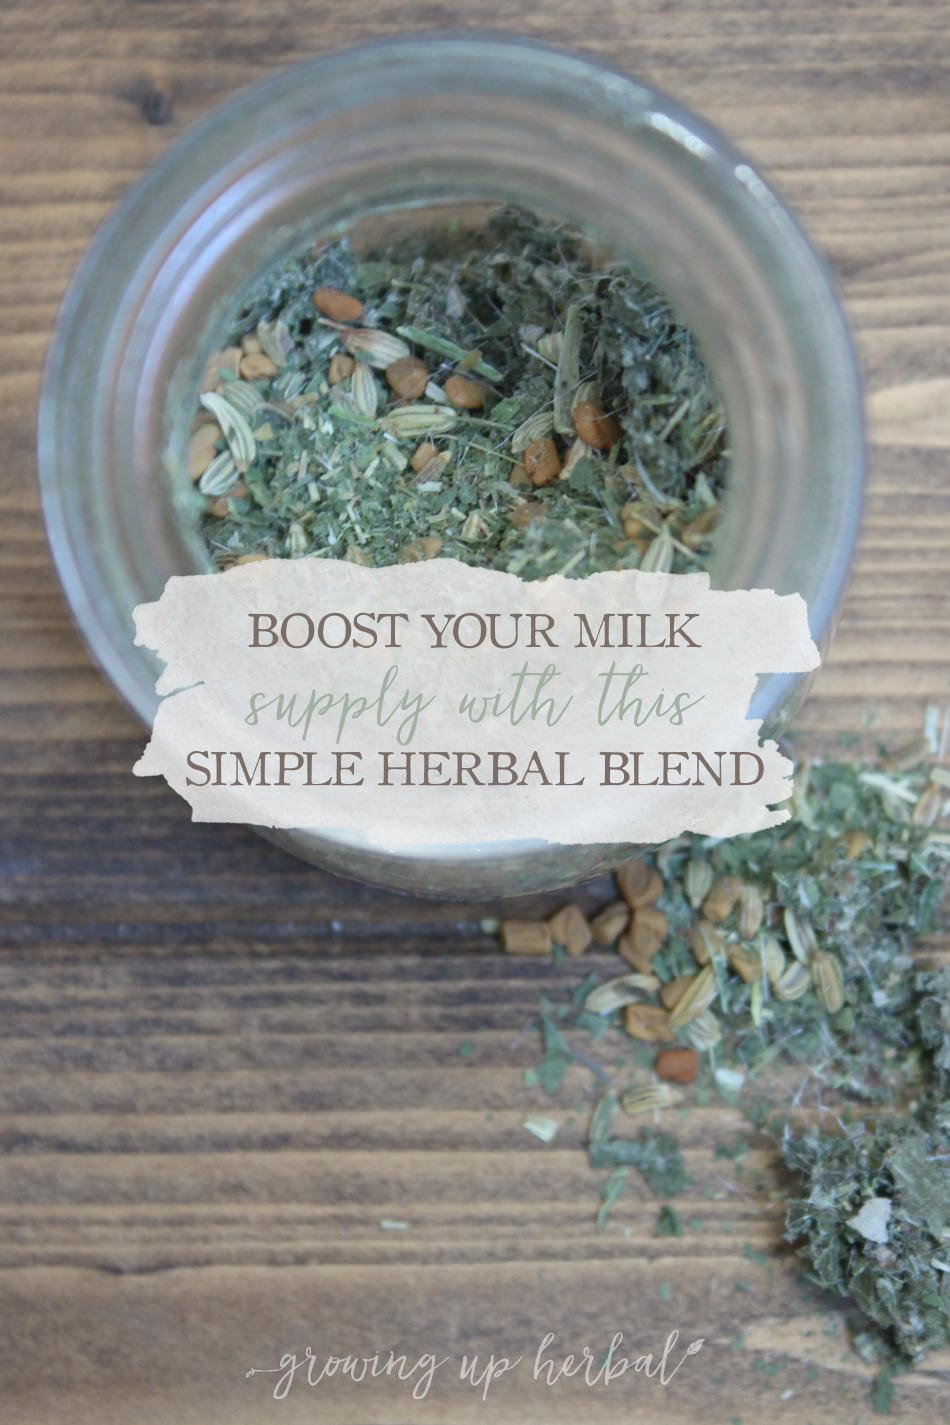 How To Boost Your Milk Supply With This Simple Herbal Blend   Growing Up Herbal   If you're a nursing mama and looking for a natural way to boost your milk supply, this herbal blend may be just the thing to help you and your milk supply.